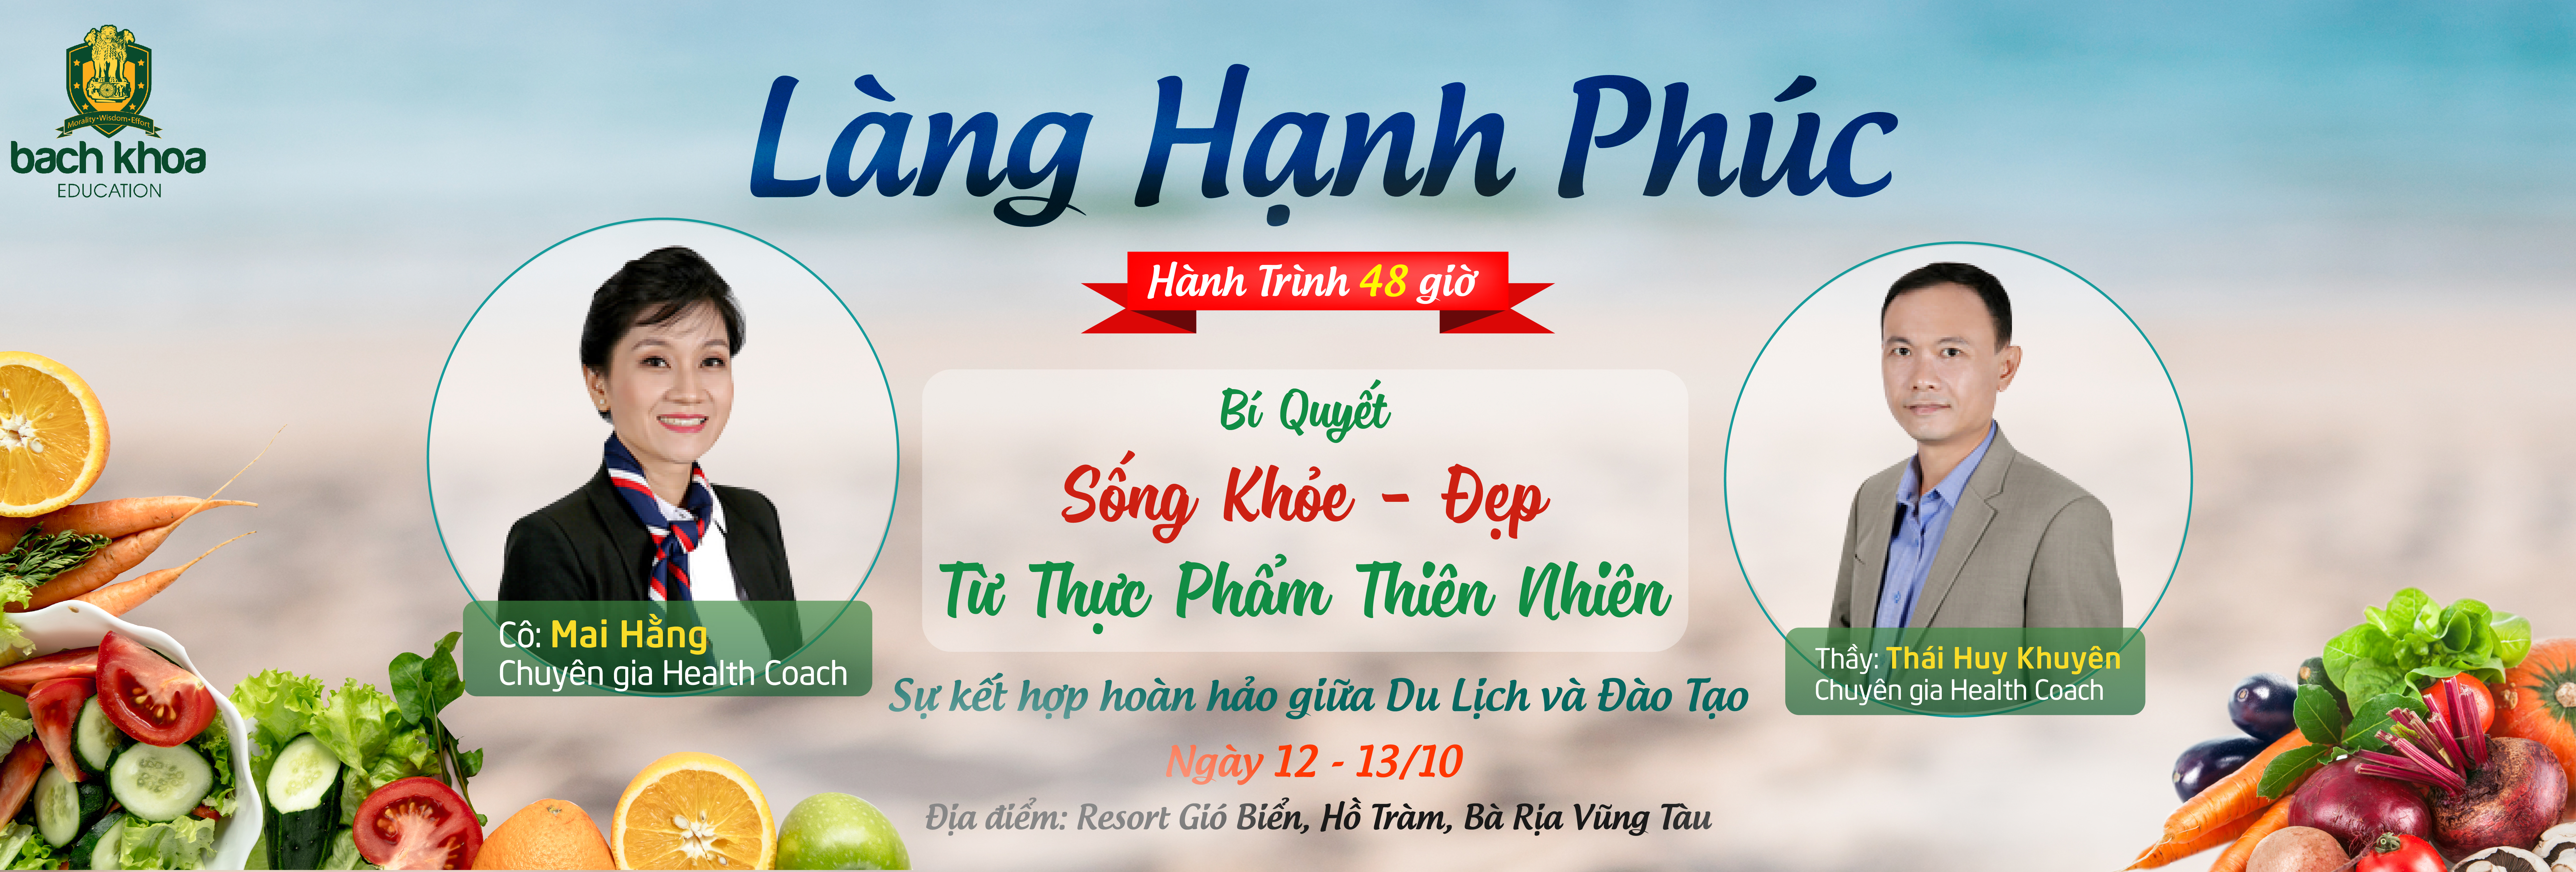 dinh-duong-lhp